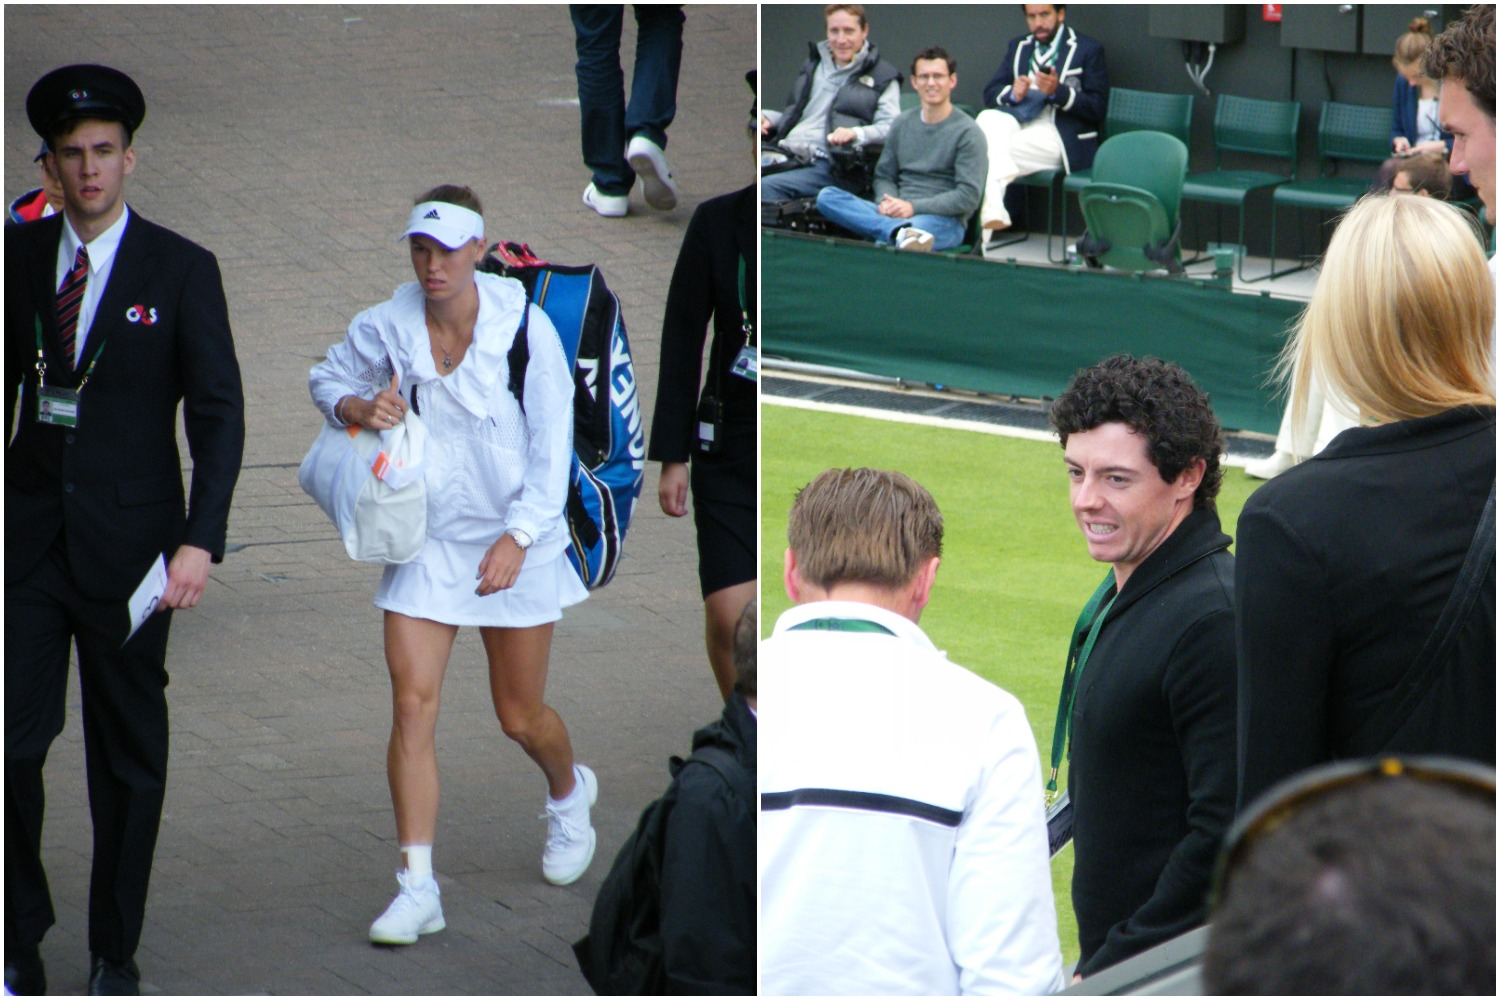 16:54 - Caroline Wozniacki looks purposeful as she approaches court... Rory McIlroy waits to watch.